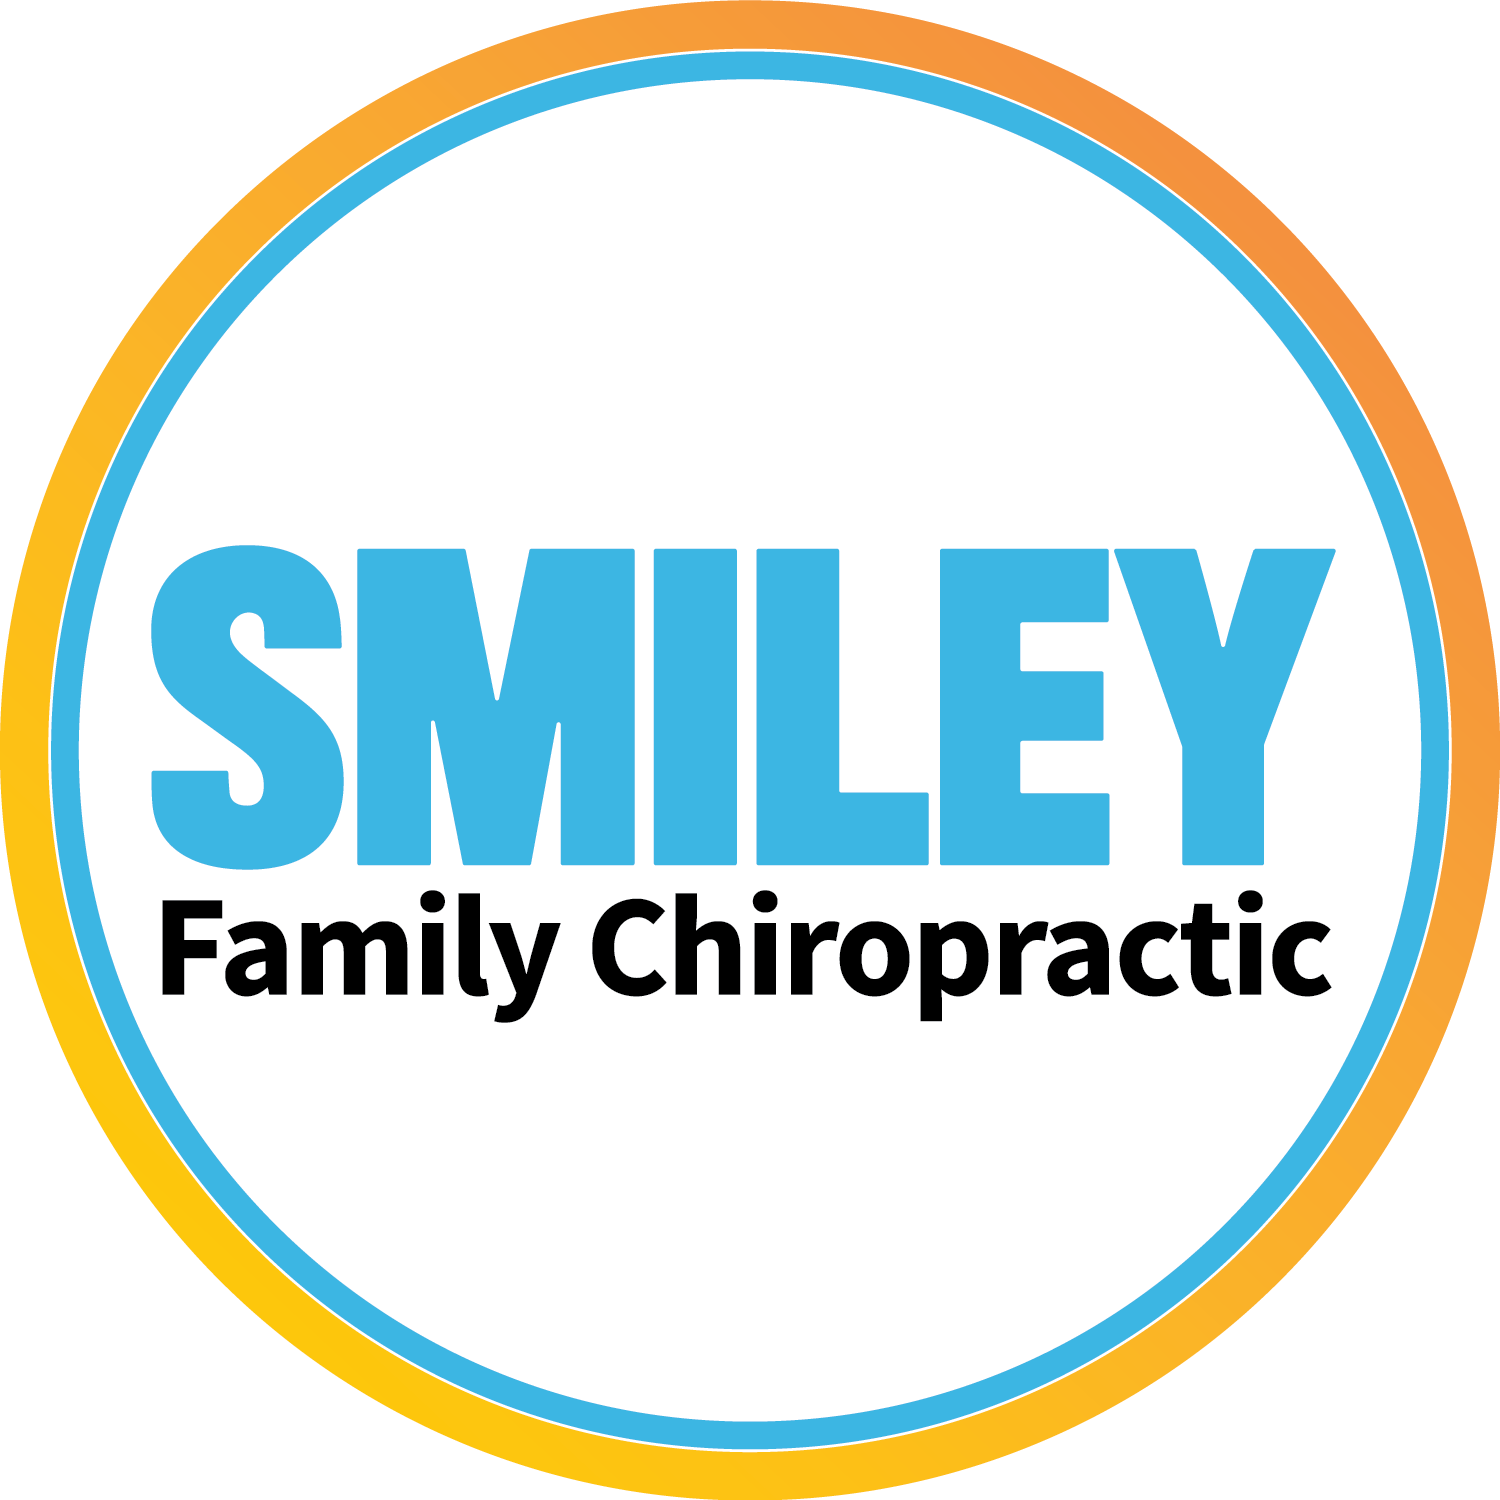 Smiley Family Chiropractic logo